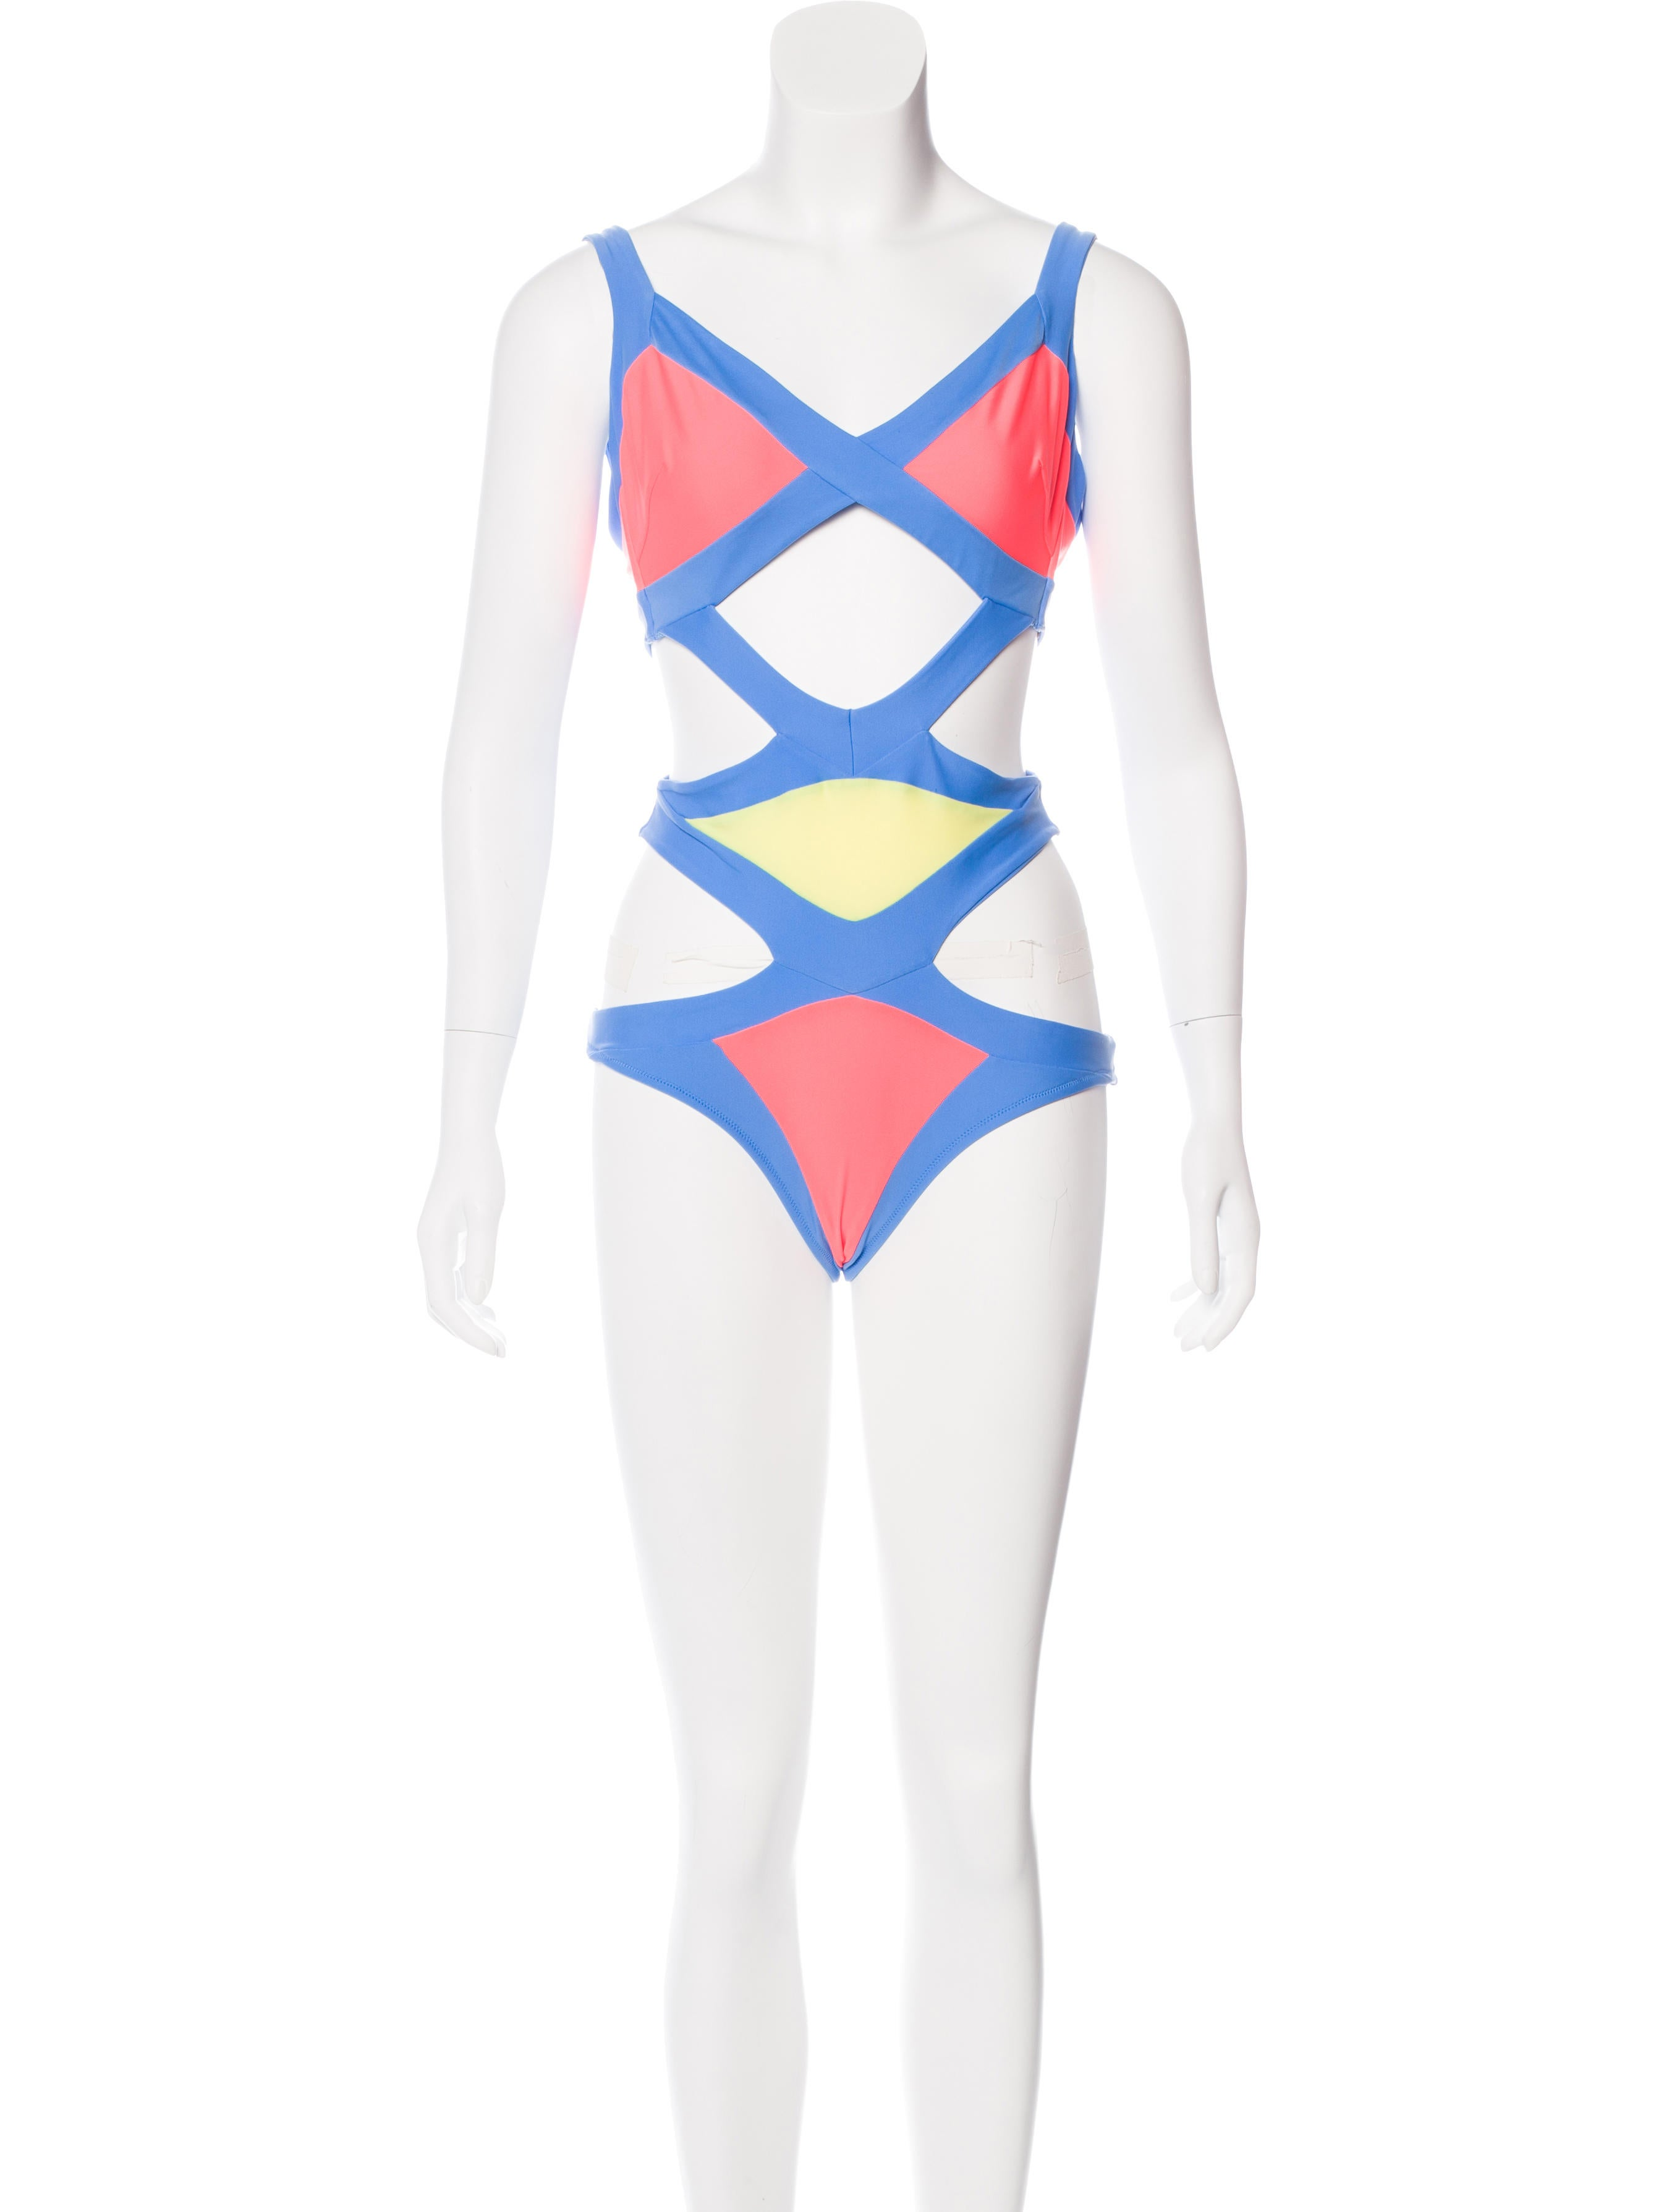 602a12a0d8 Agent Provocateur Mazzy Colorblock Swimsuit w  Tags - Clothing ...